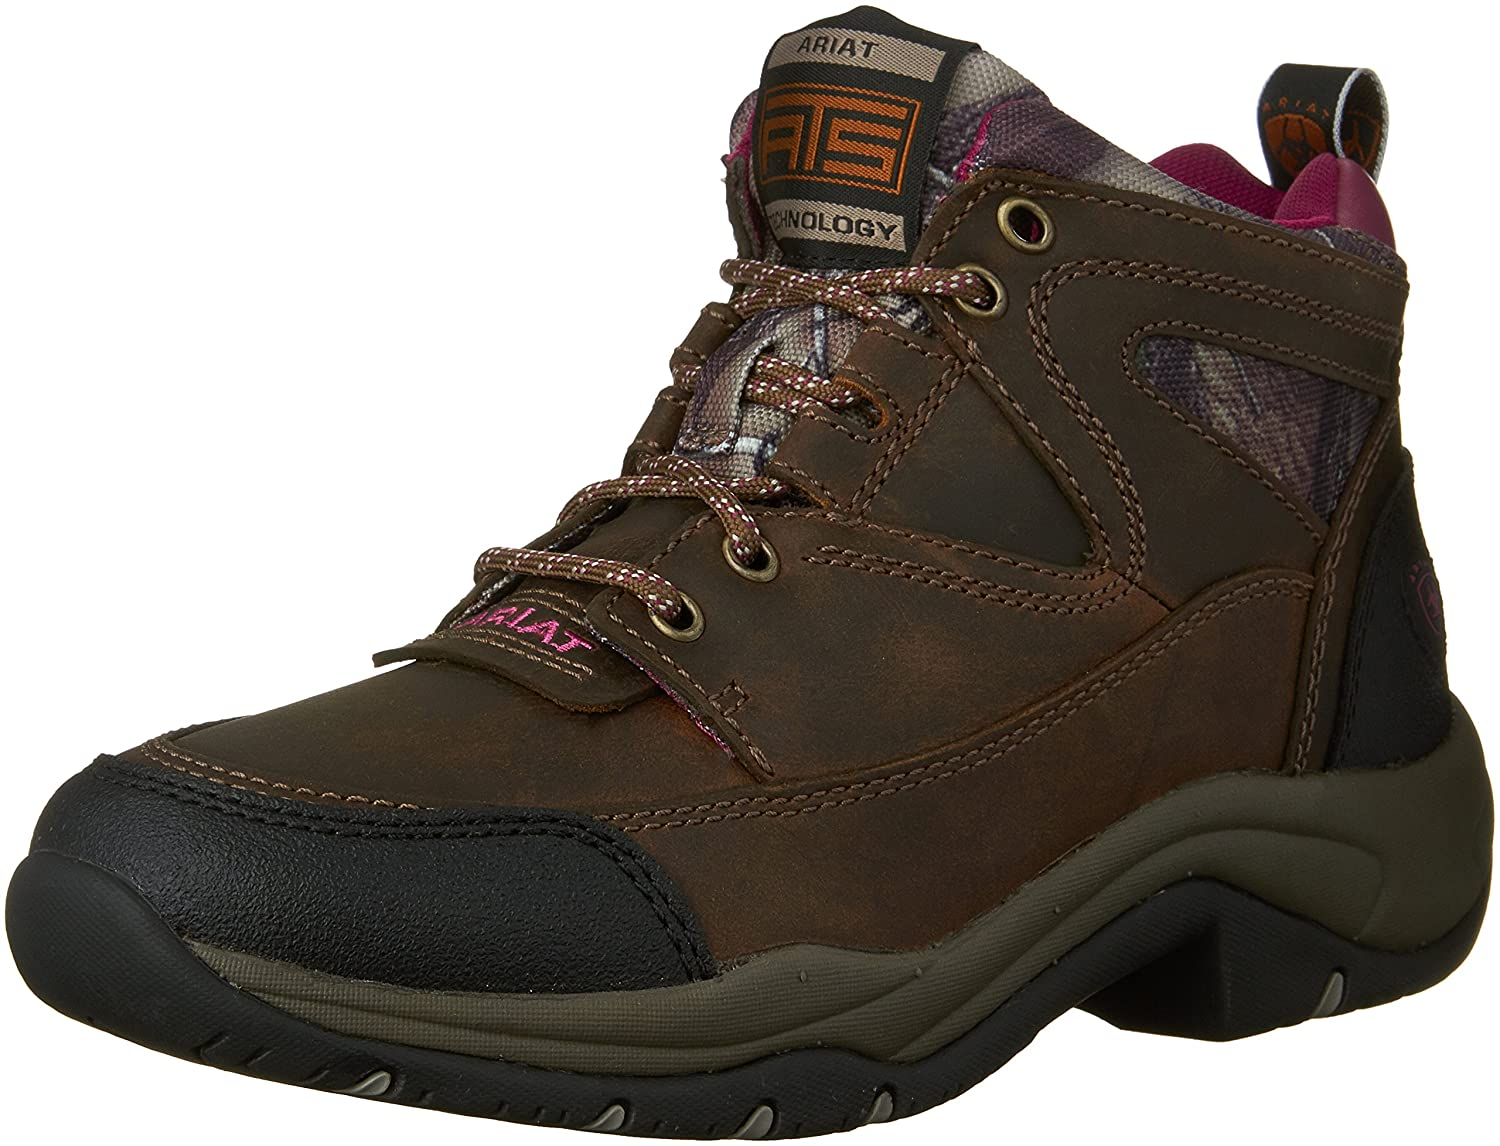 Ariat Women's Terrain Work Boot B00UB6ZSZA 10 B(M) US|Pink Multi/True Timber